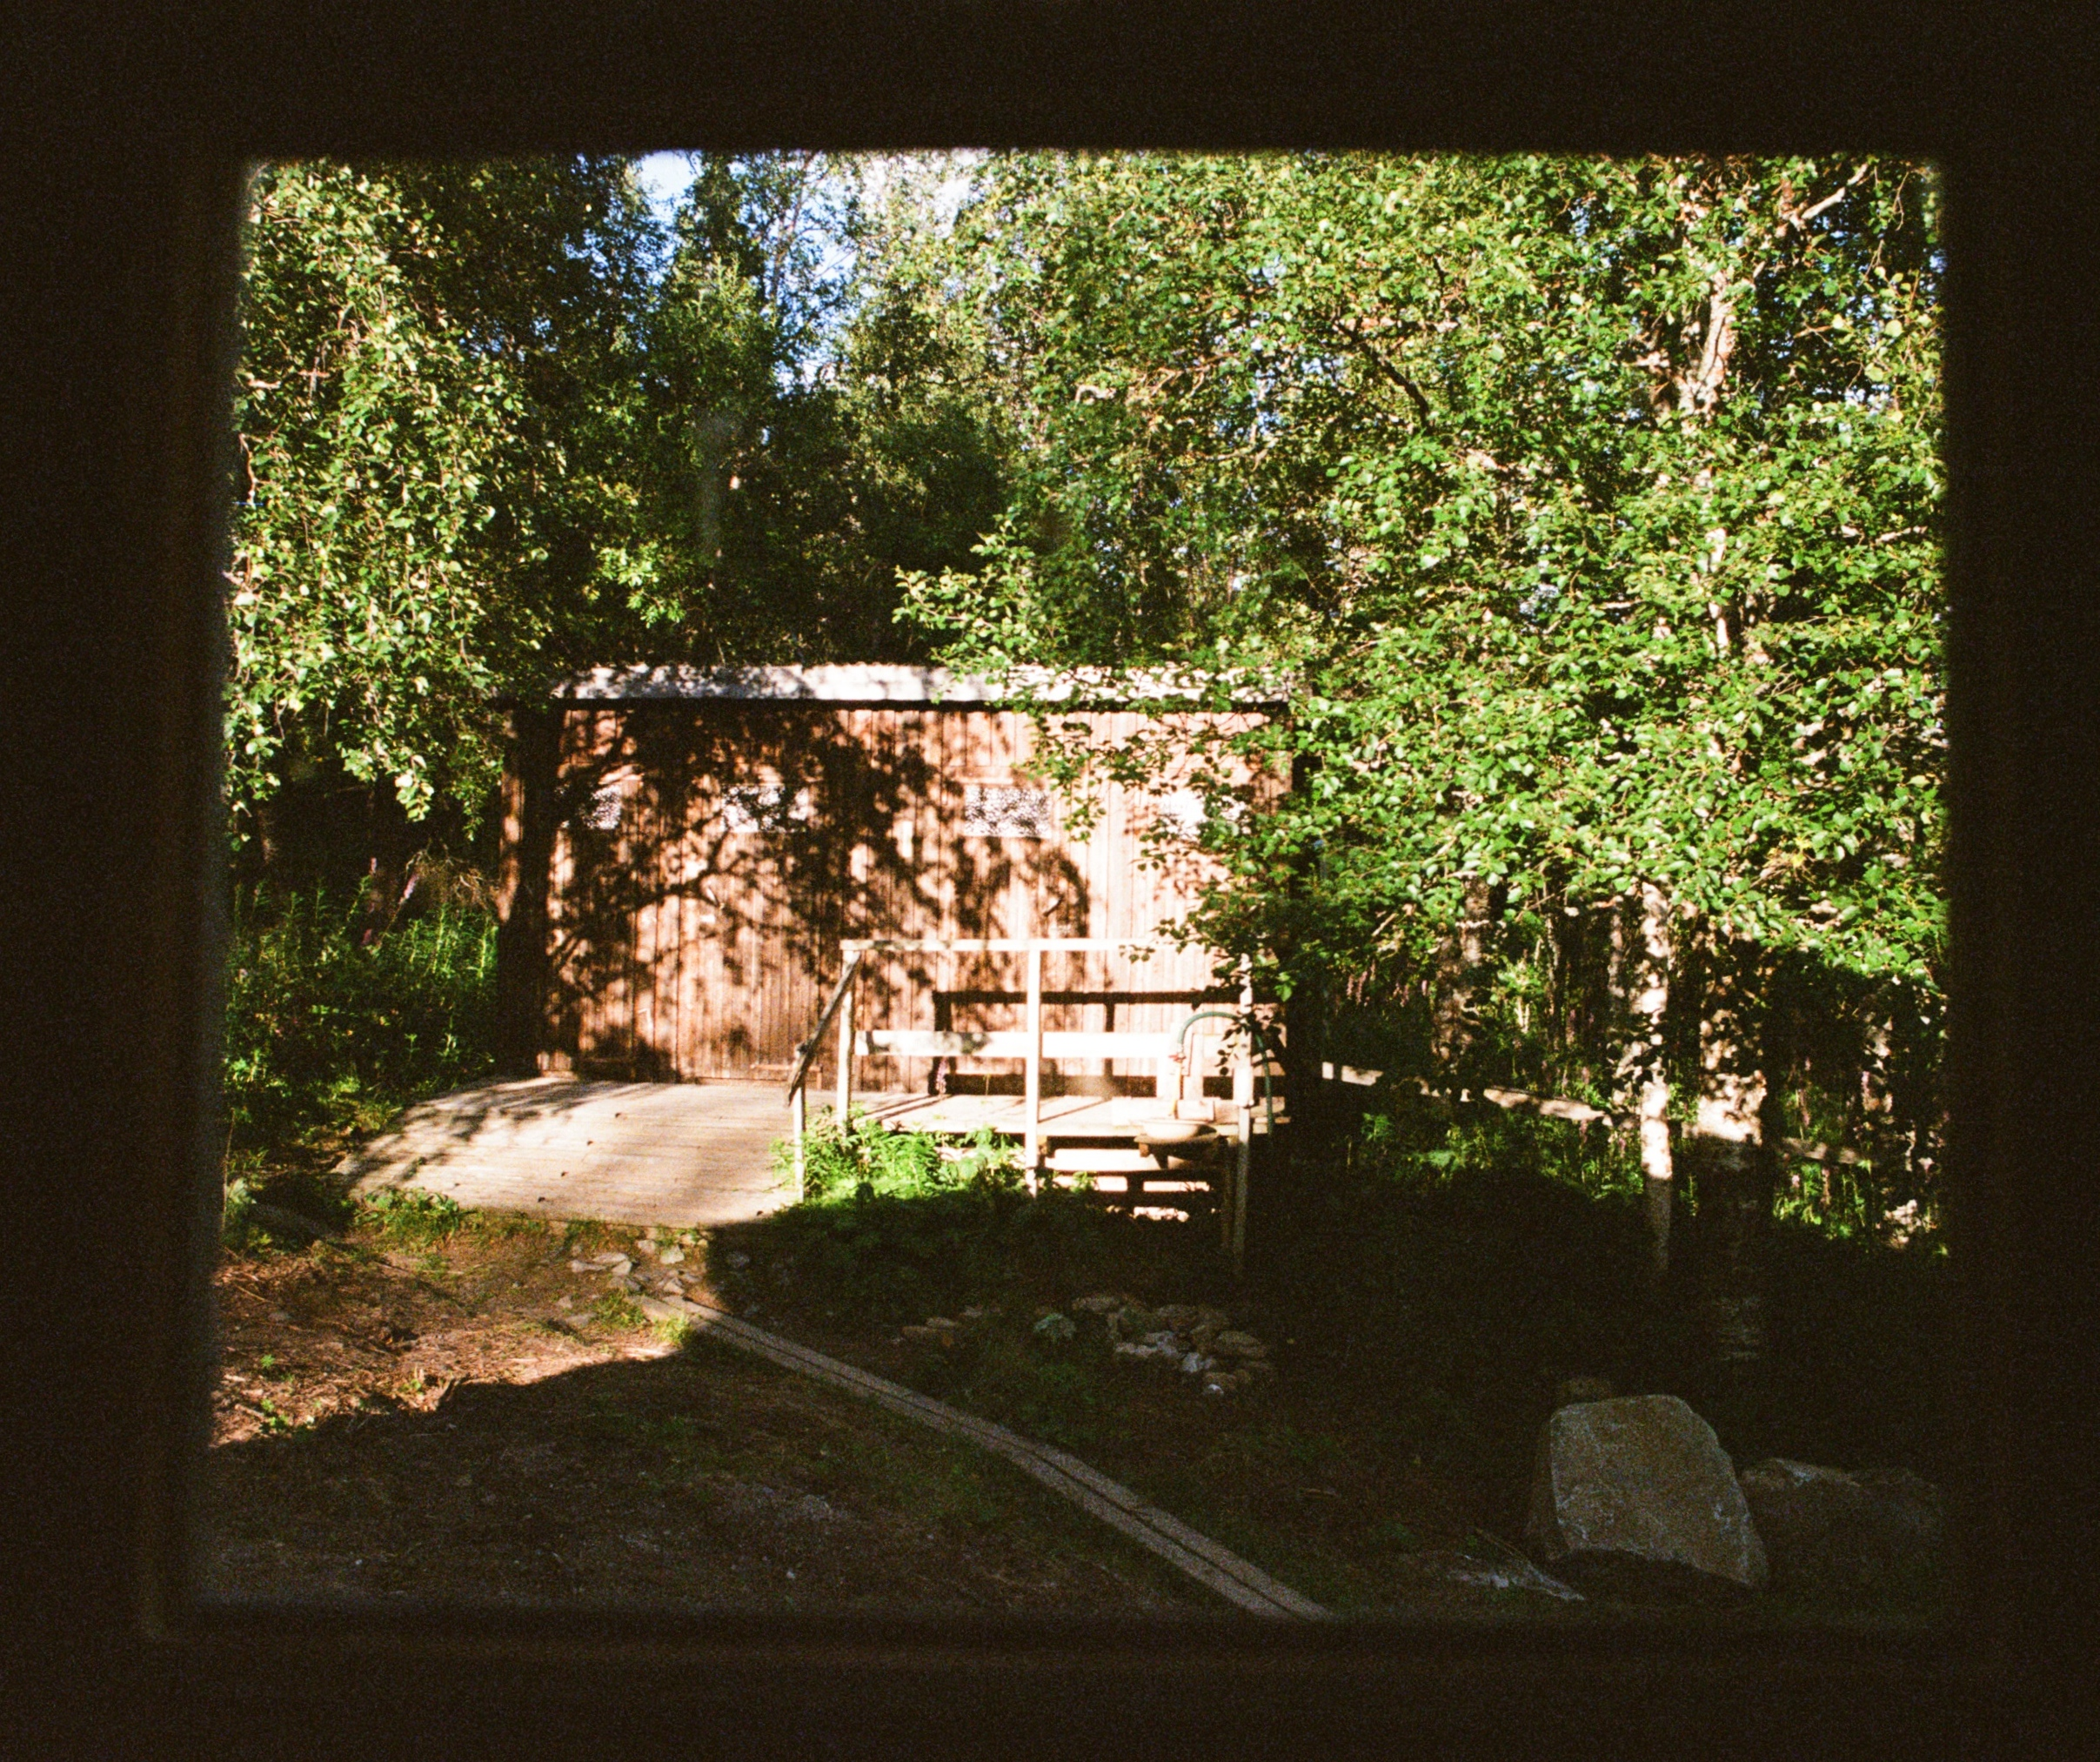 35mm color photograph, 2014